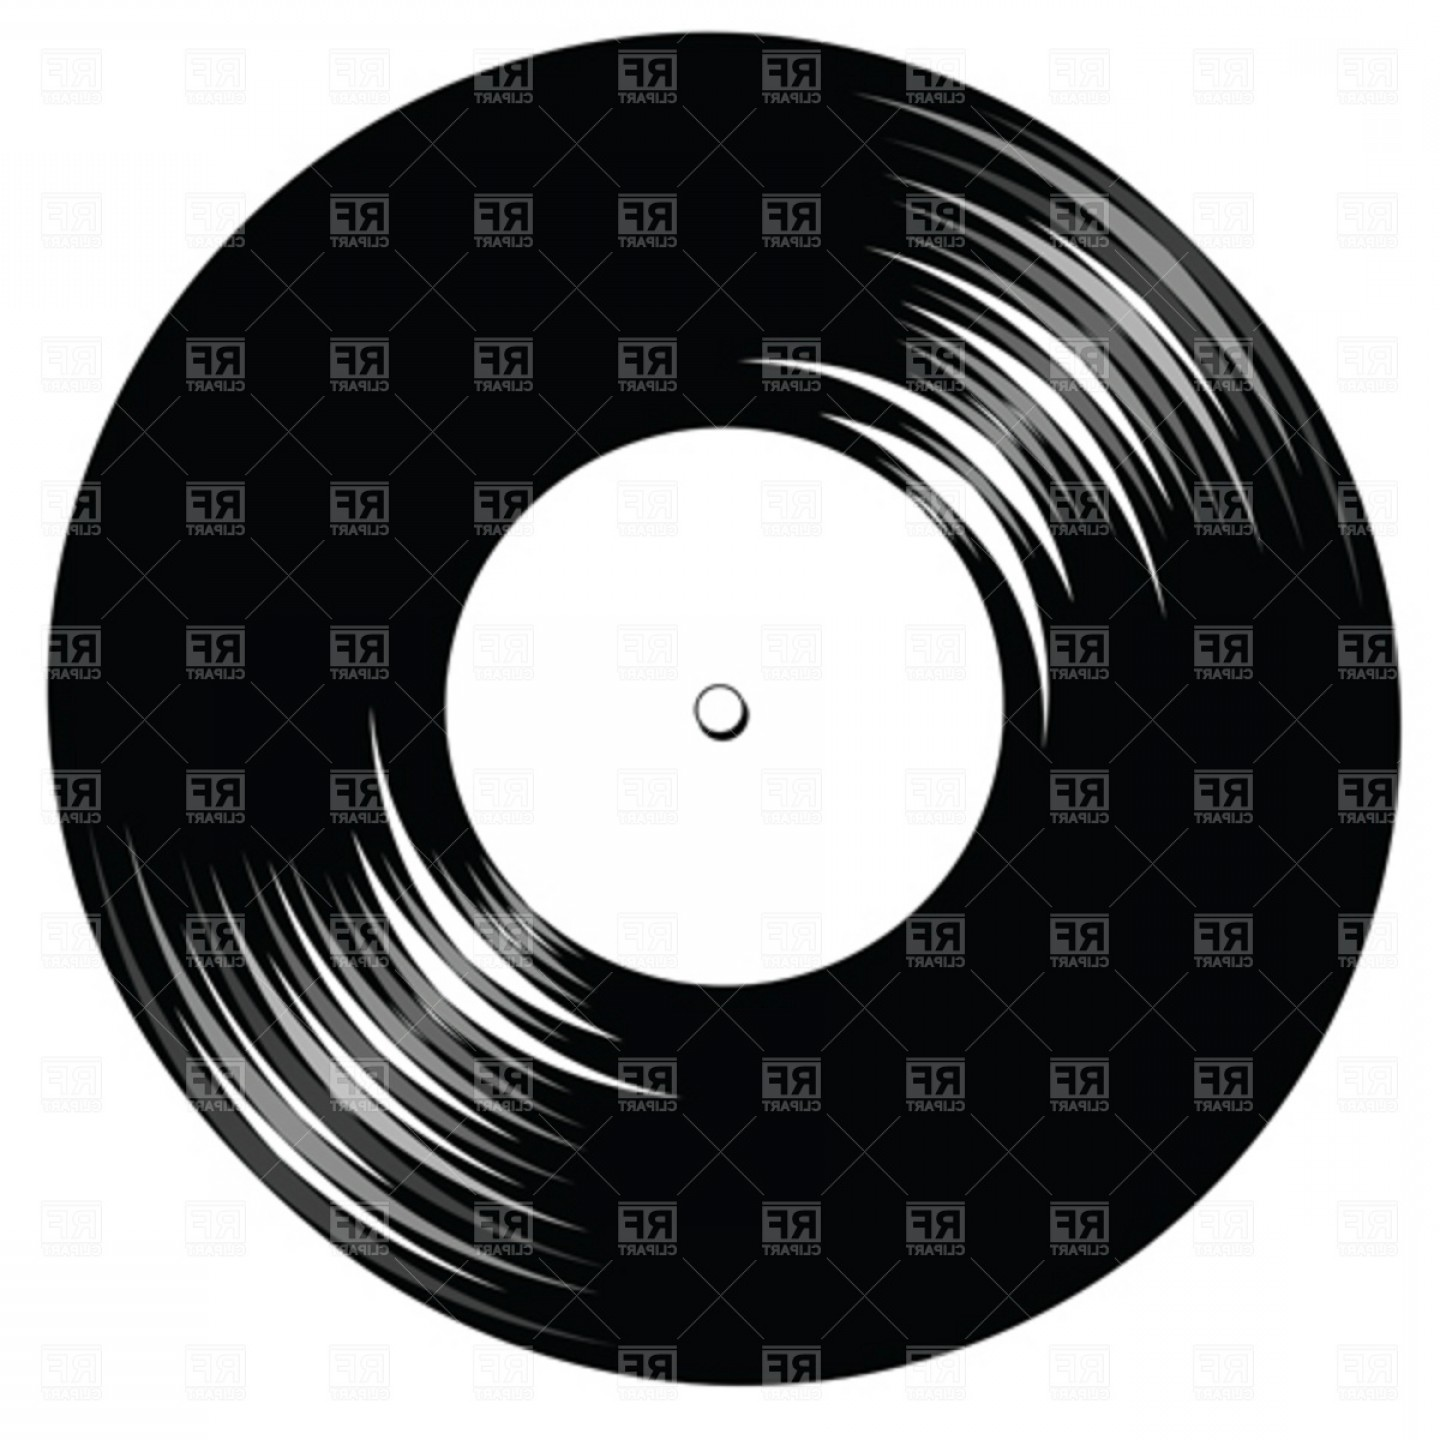 Vinyl Vector Tools: Vintage Vinyl Record With Space For Text Vector Clipart